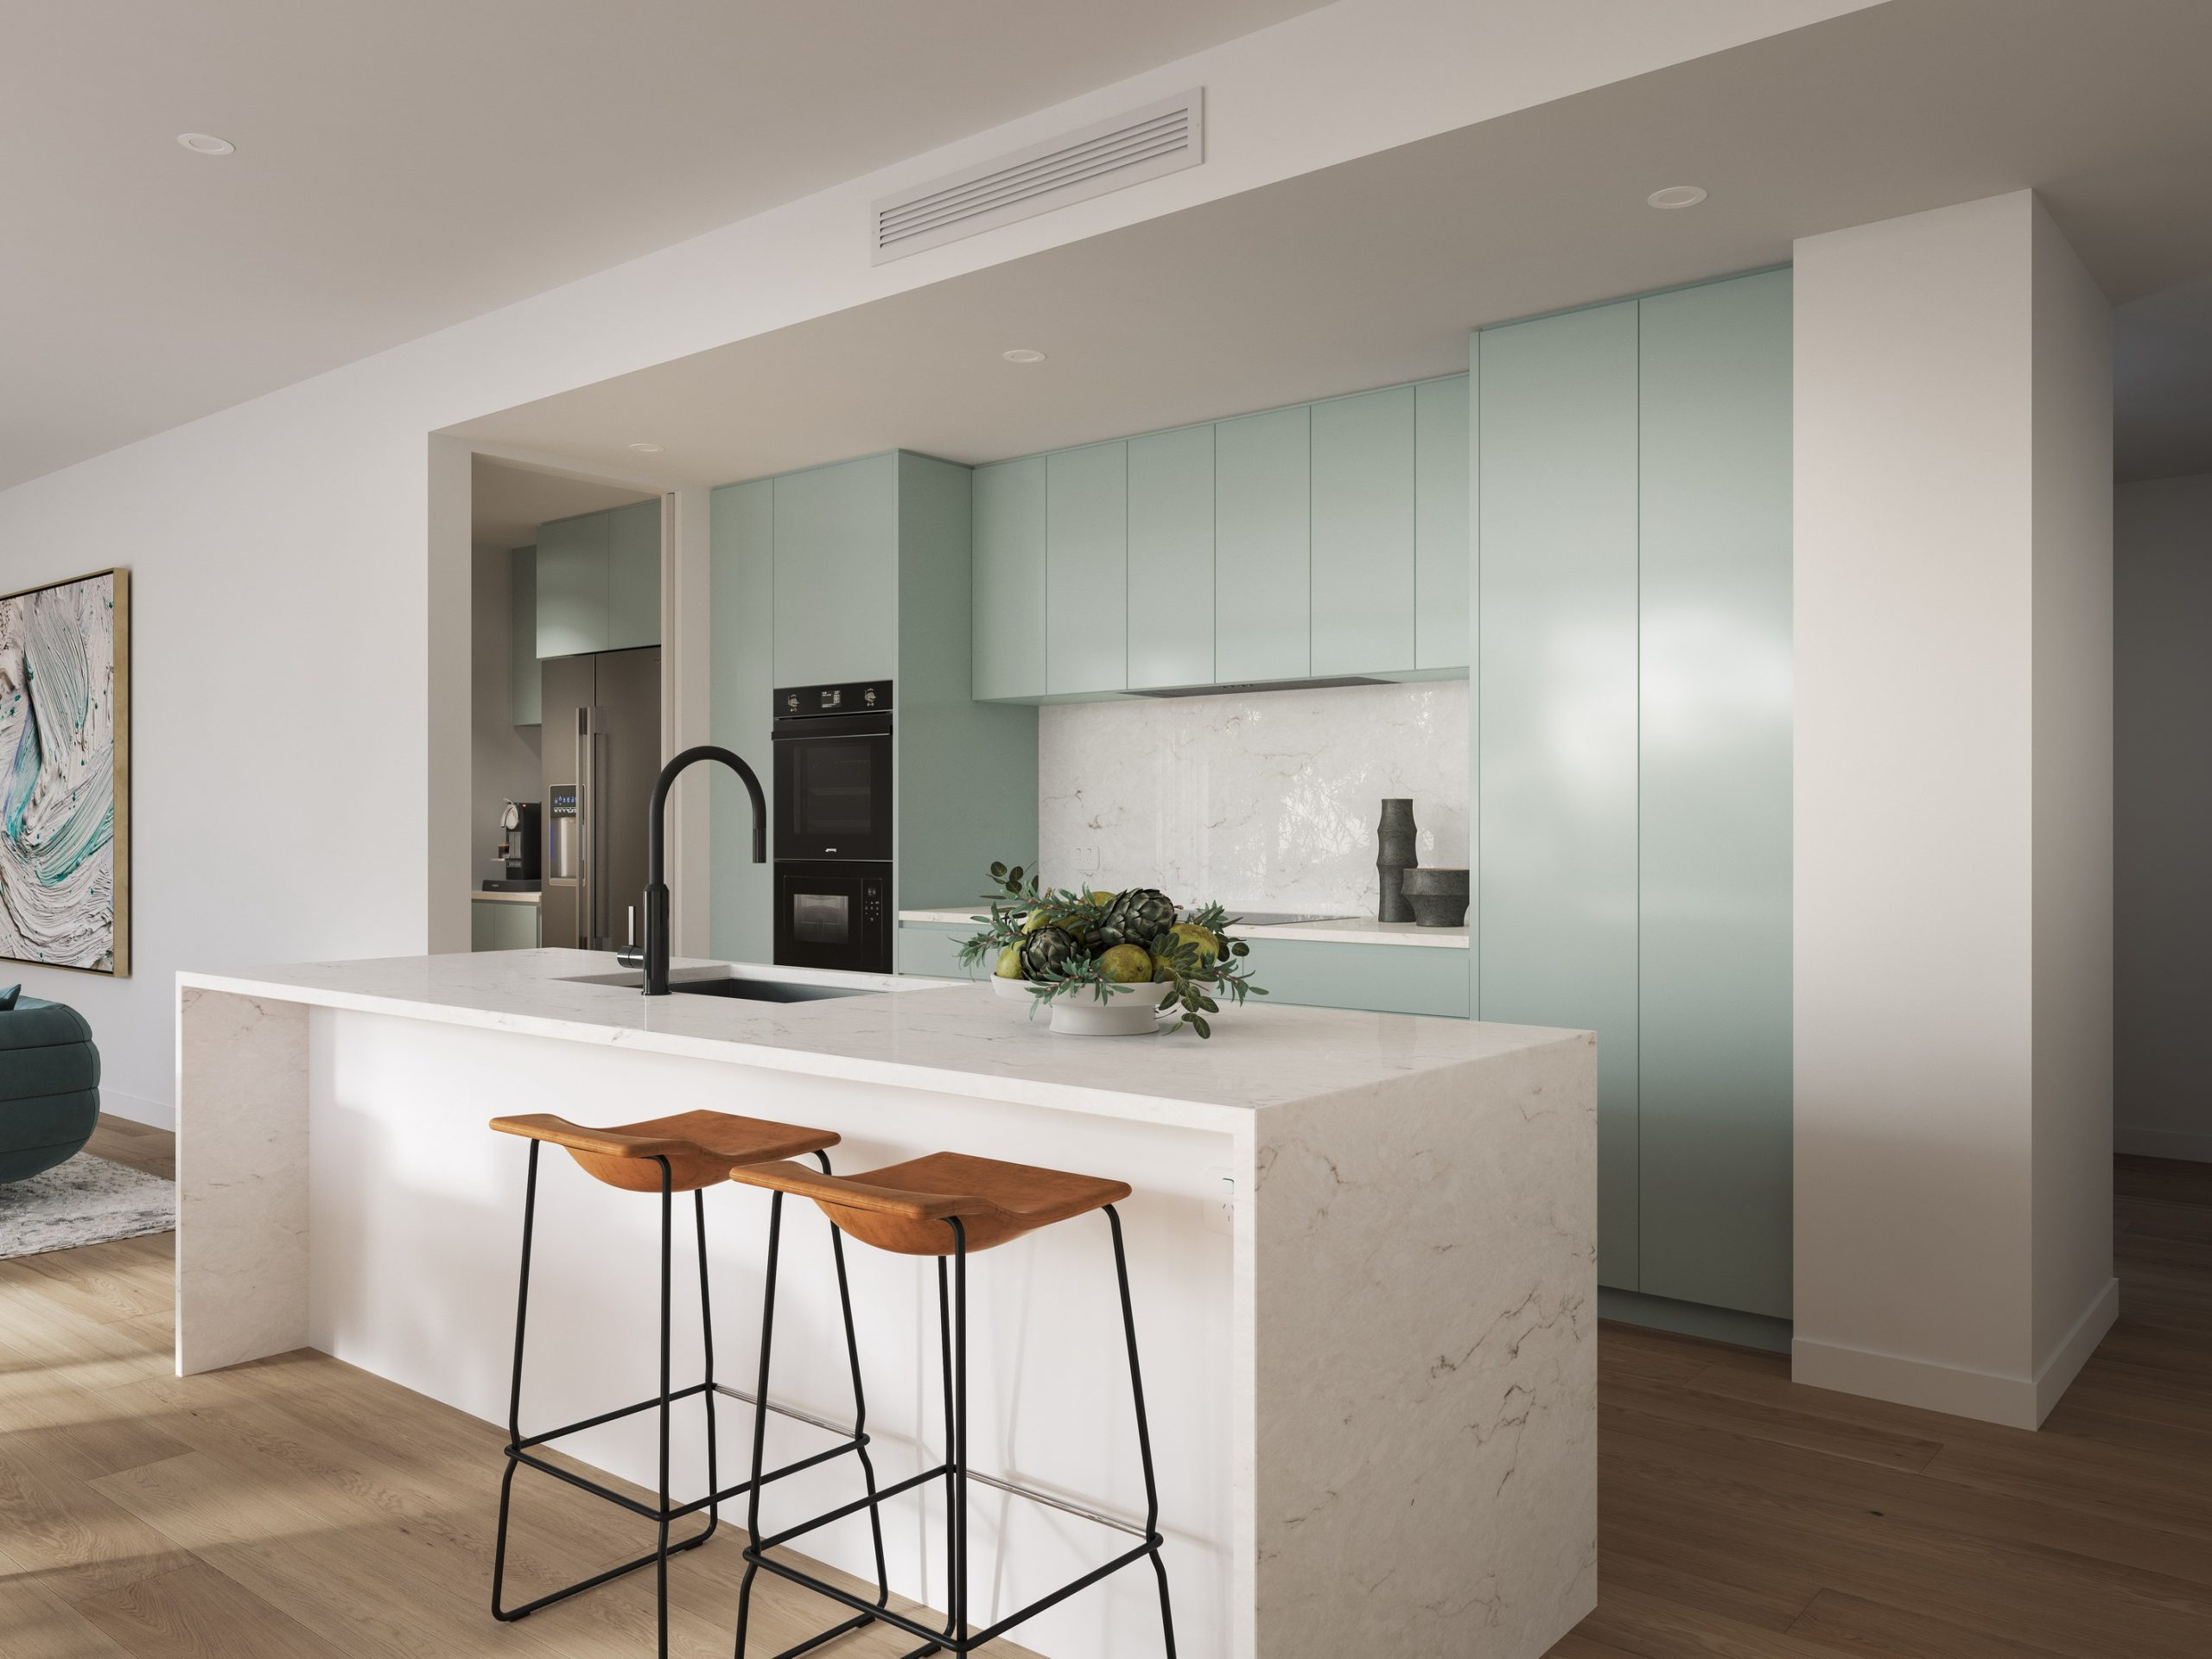 fkd-studio-render-architecture-image-the-grounds-interior-ivanhoe-residential